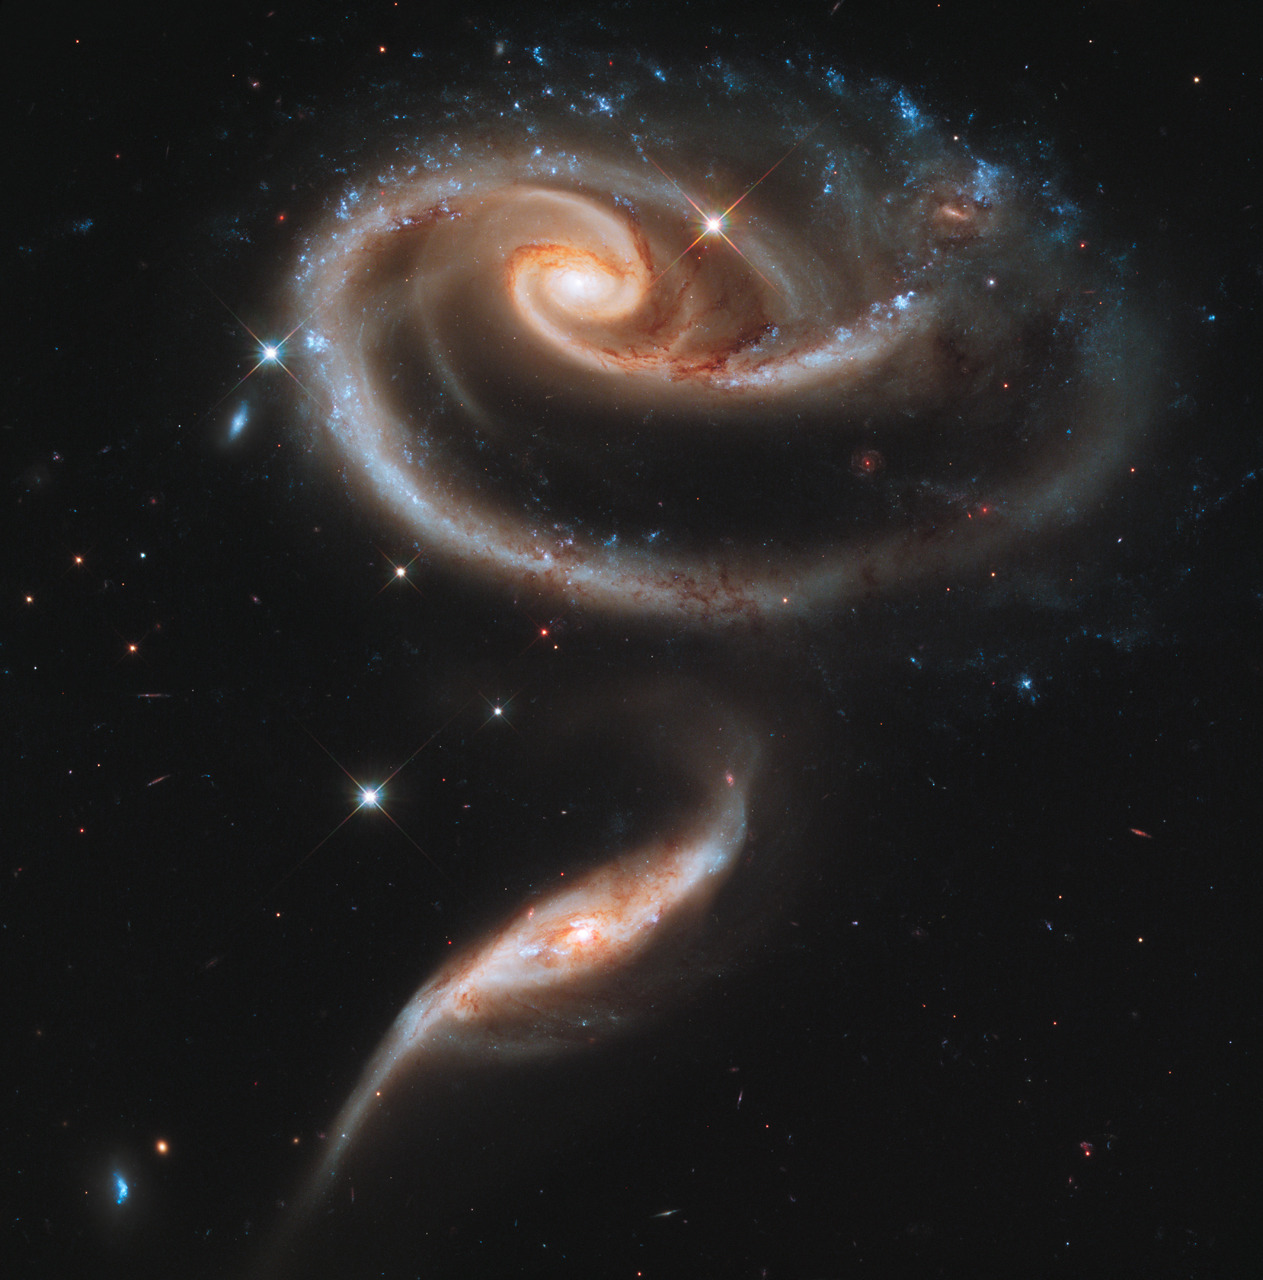 itsfullofstars:  APOD: Peculiar Galaxies of Arp 273 Credit: NASA, ESA, and the Hubble Heritage Team (STScI / AURA) Explanation: The spiky stars in the foreground of this sharp cosmic portrait are well within our own Milky Way Galaxy. The two eye-catching galaxies lie far beyond the Milky Way, at a distance of over 300 million light-years. Their distorted appearance is due to gravitational tides as the pair engage in close encounters. Cataloged as Arp 273 (also as UGC 1810), the galaxies do look peculiar, but interacting galaxies are now understood to be common in the universe. In fact, the nearby large spiral Andromeda Galaxy is known to be some 2 million light-years away and approaching the Milky Way. Arp 273 may offer an analog of their far future encounter. Repeated galaxy encounters on a cosmic timescale can ultimately result in a merger into a single galaxy of stars. From our perspective, the bright cores of the Arp 273 galaxies are separated by only a little over 100,000 light-years. The release of this stunning vista celebrates the 21st anniversary of the Hubble Space Telescope in orbit.